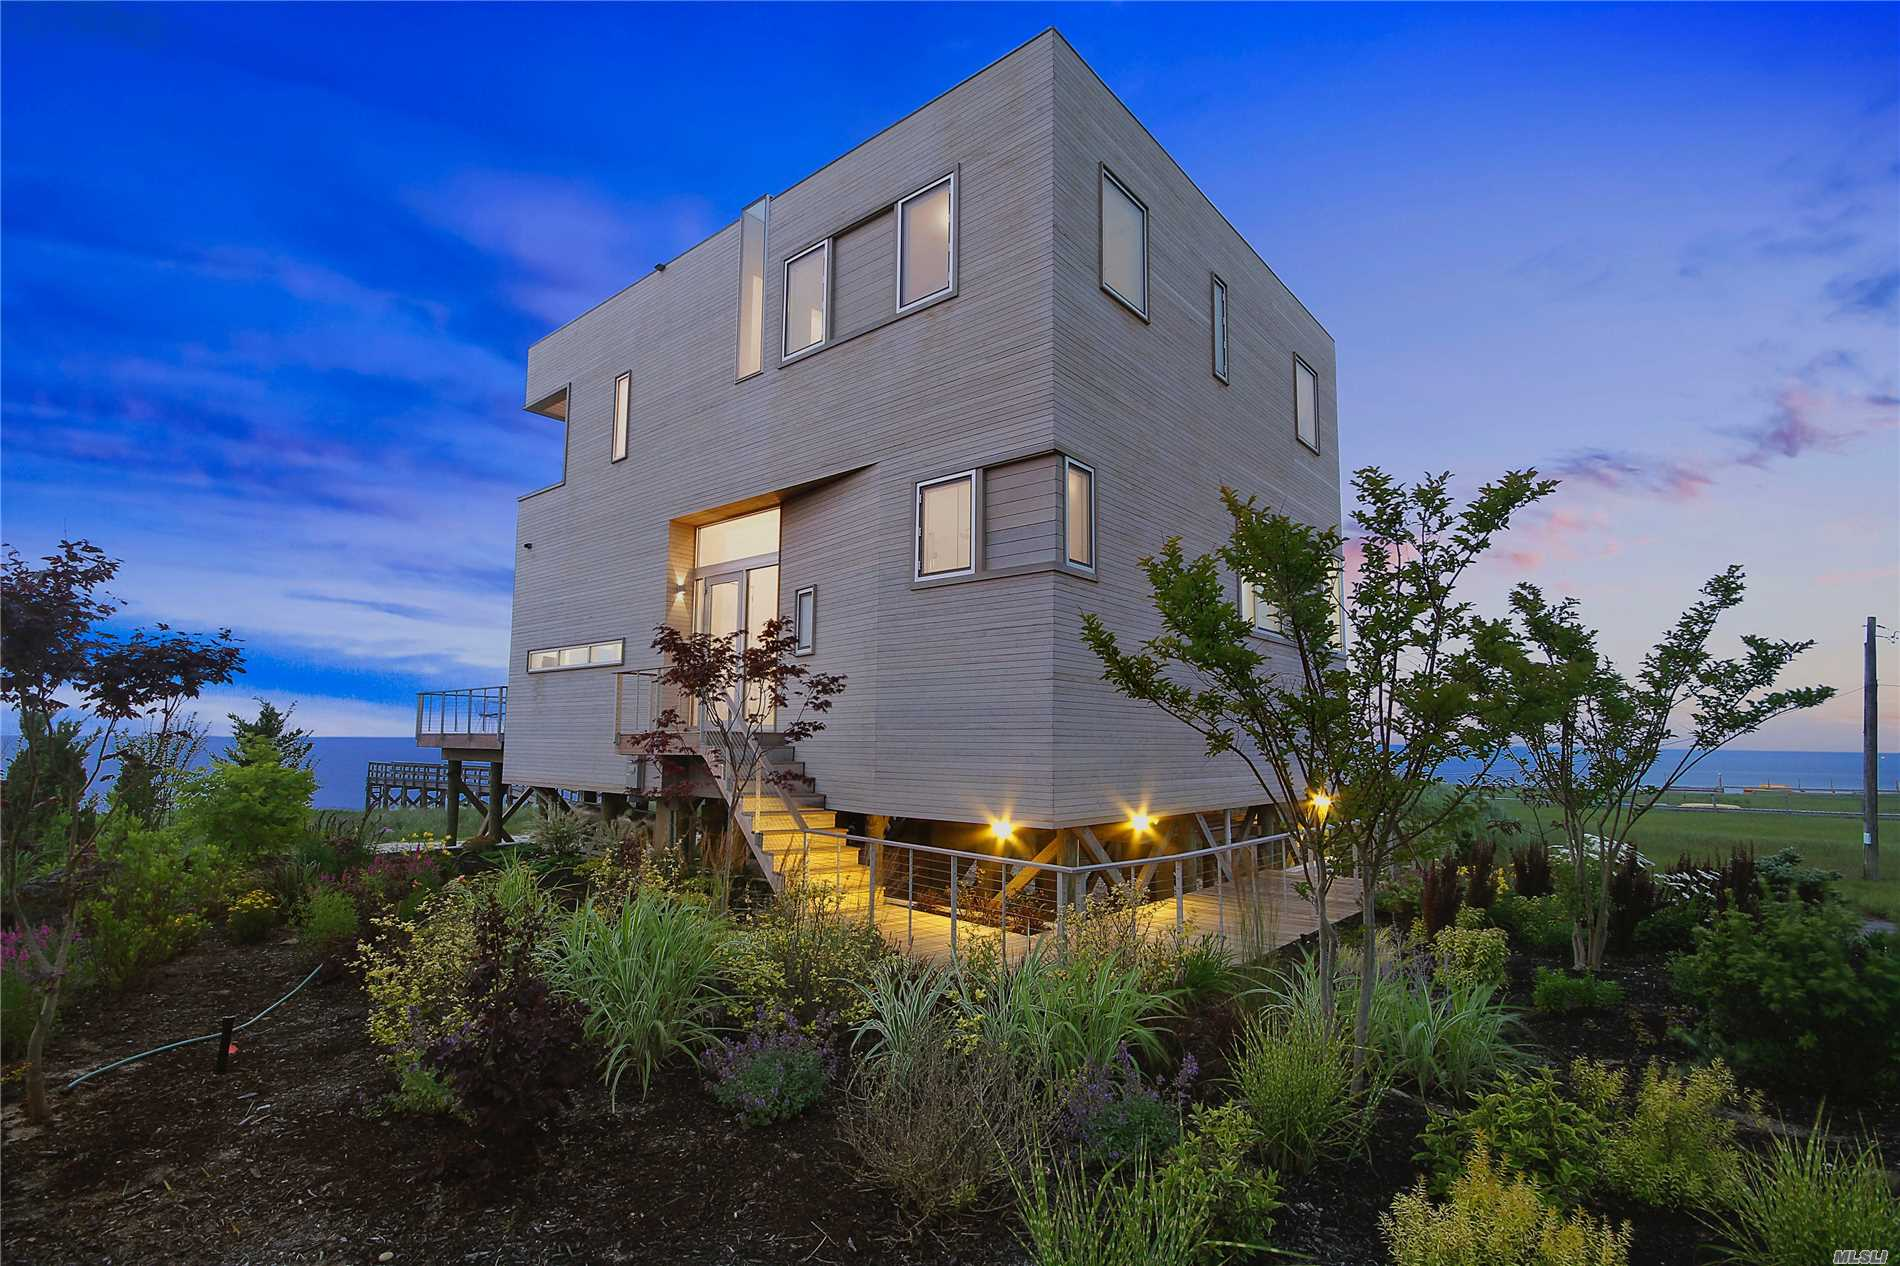 Imagine Endless Bayfront Views From A Modern Home Designed By Award Winning Leroy Street Studio Architecture Of Nyc. The Cube Was Completed In 2013 And Has Since Been Written About And Even Televised All Over The World. Set Upon +/- 3/4 Of Acres Of Bayfront Property, The Cube Leaves You Feeling Like Your Living Above Water.